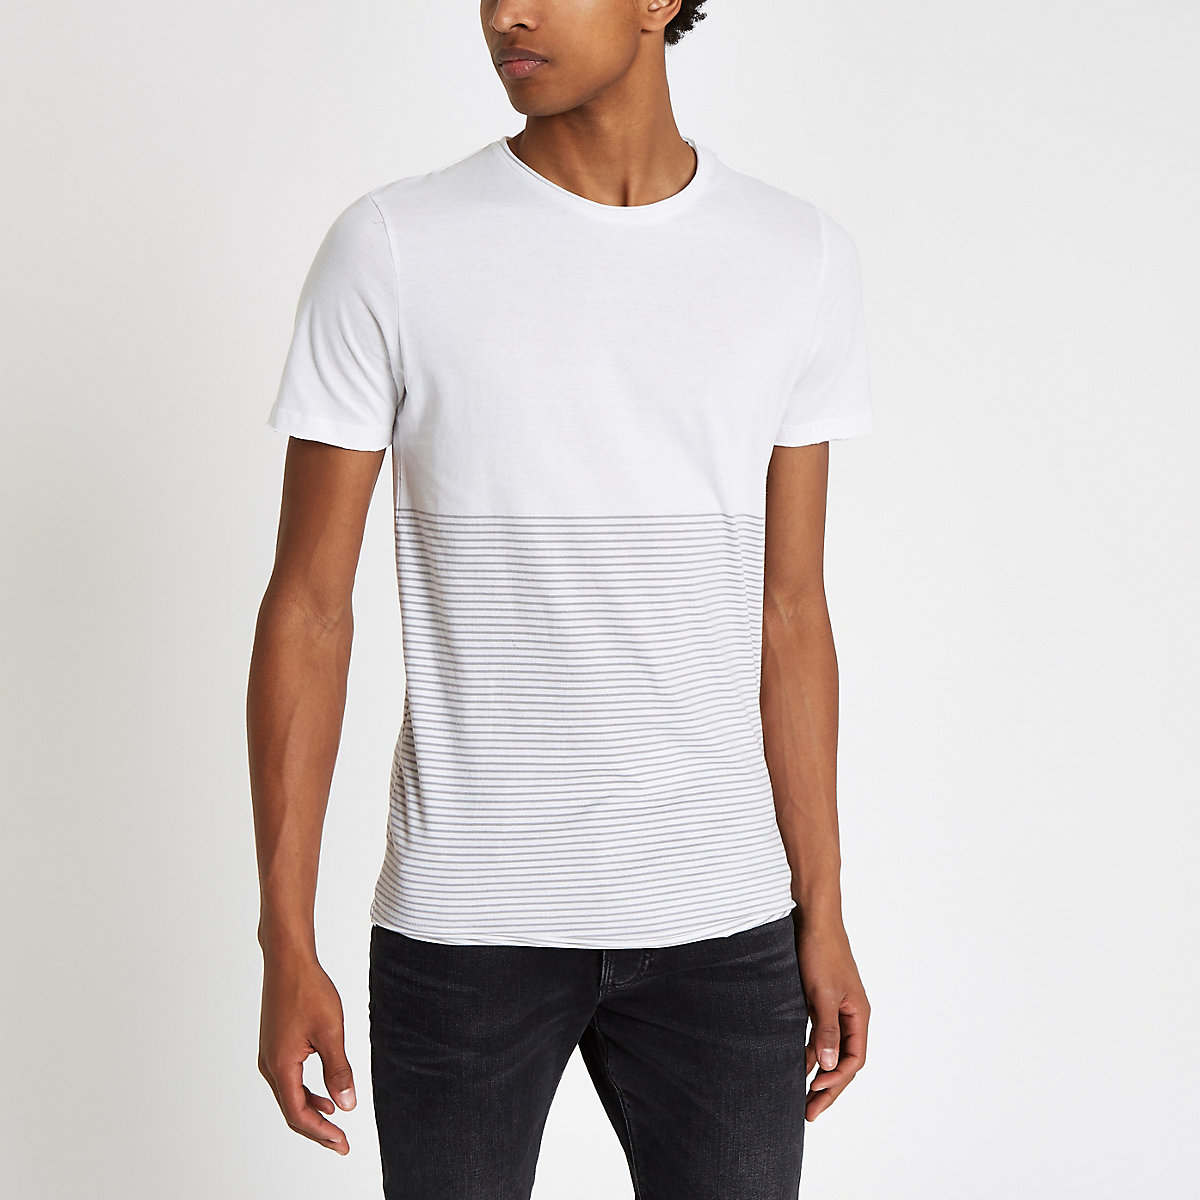 Jack & Jones Premium white stripe T-shirt